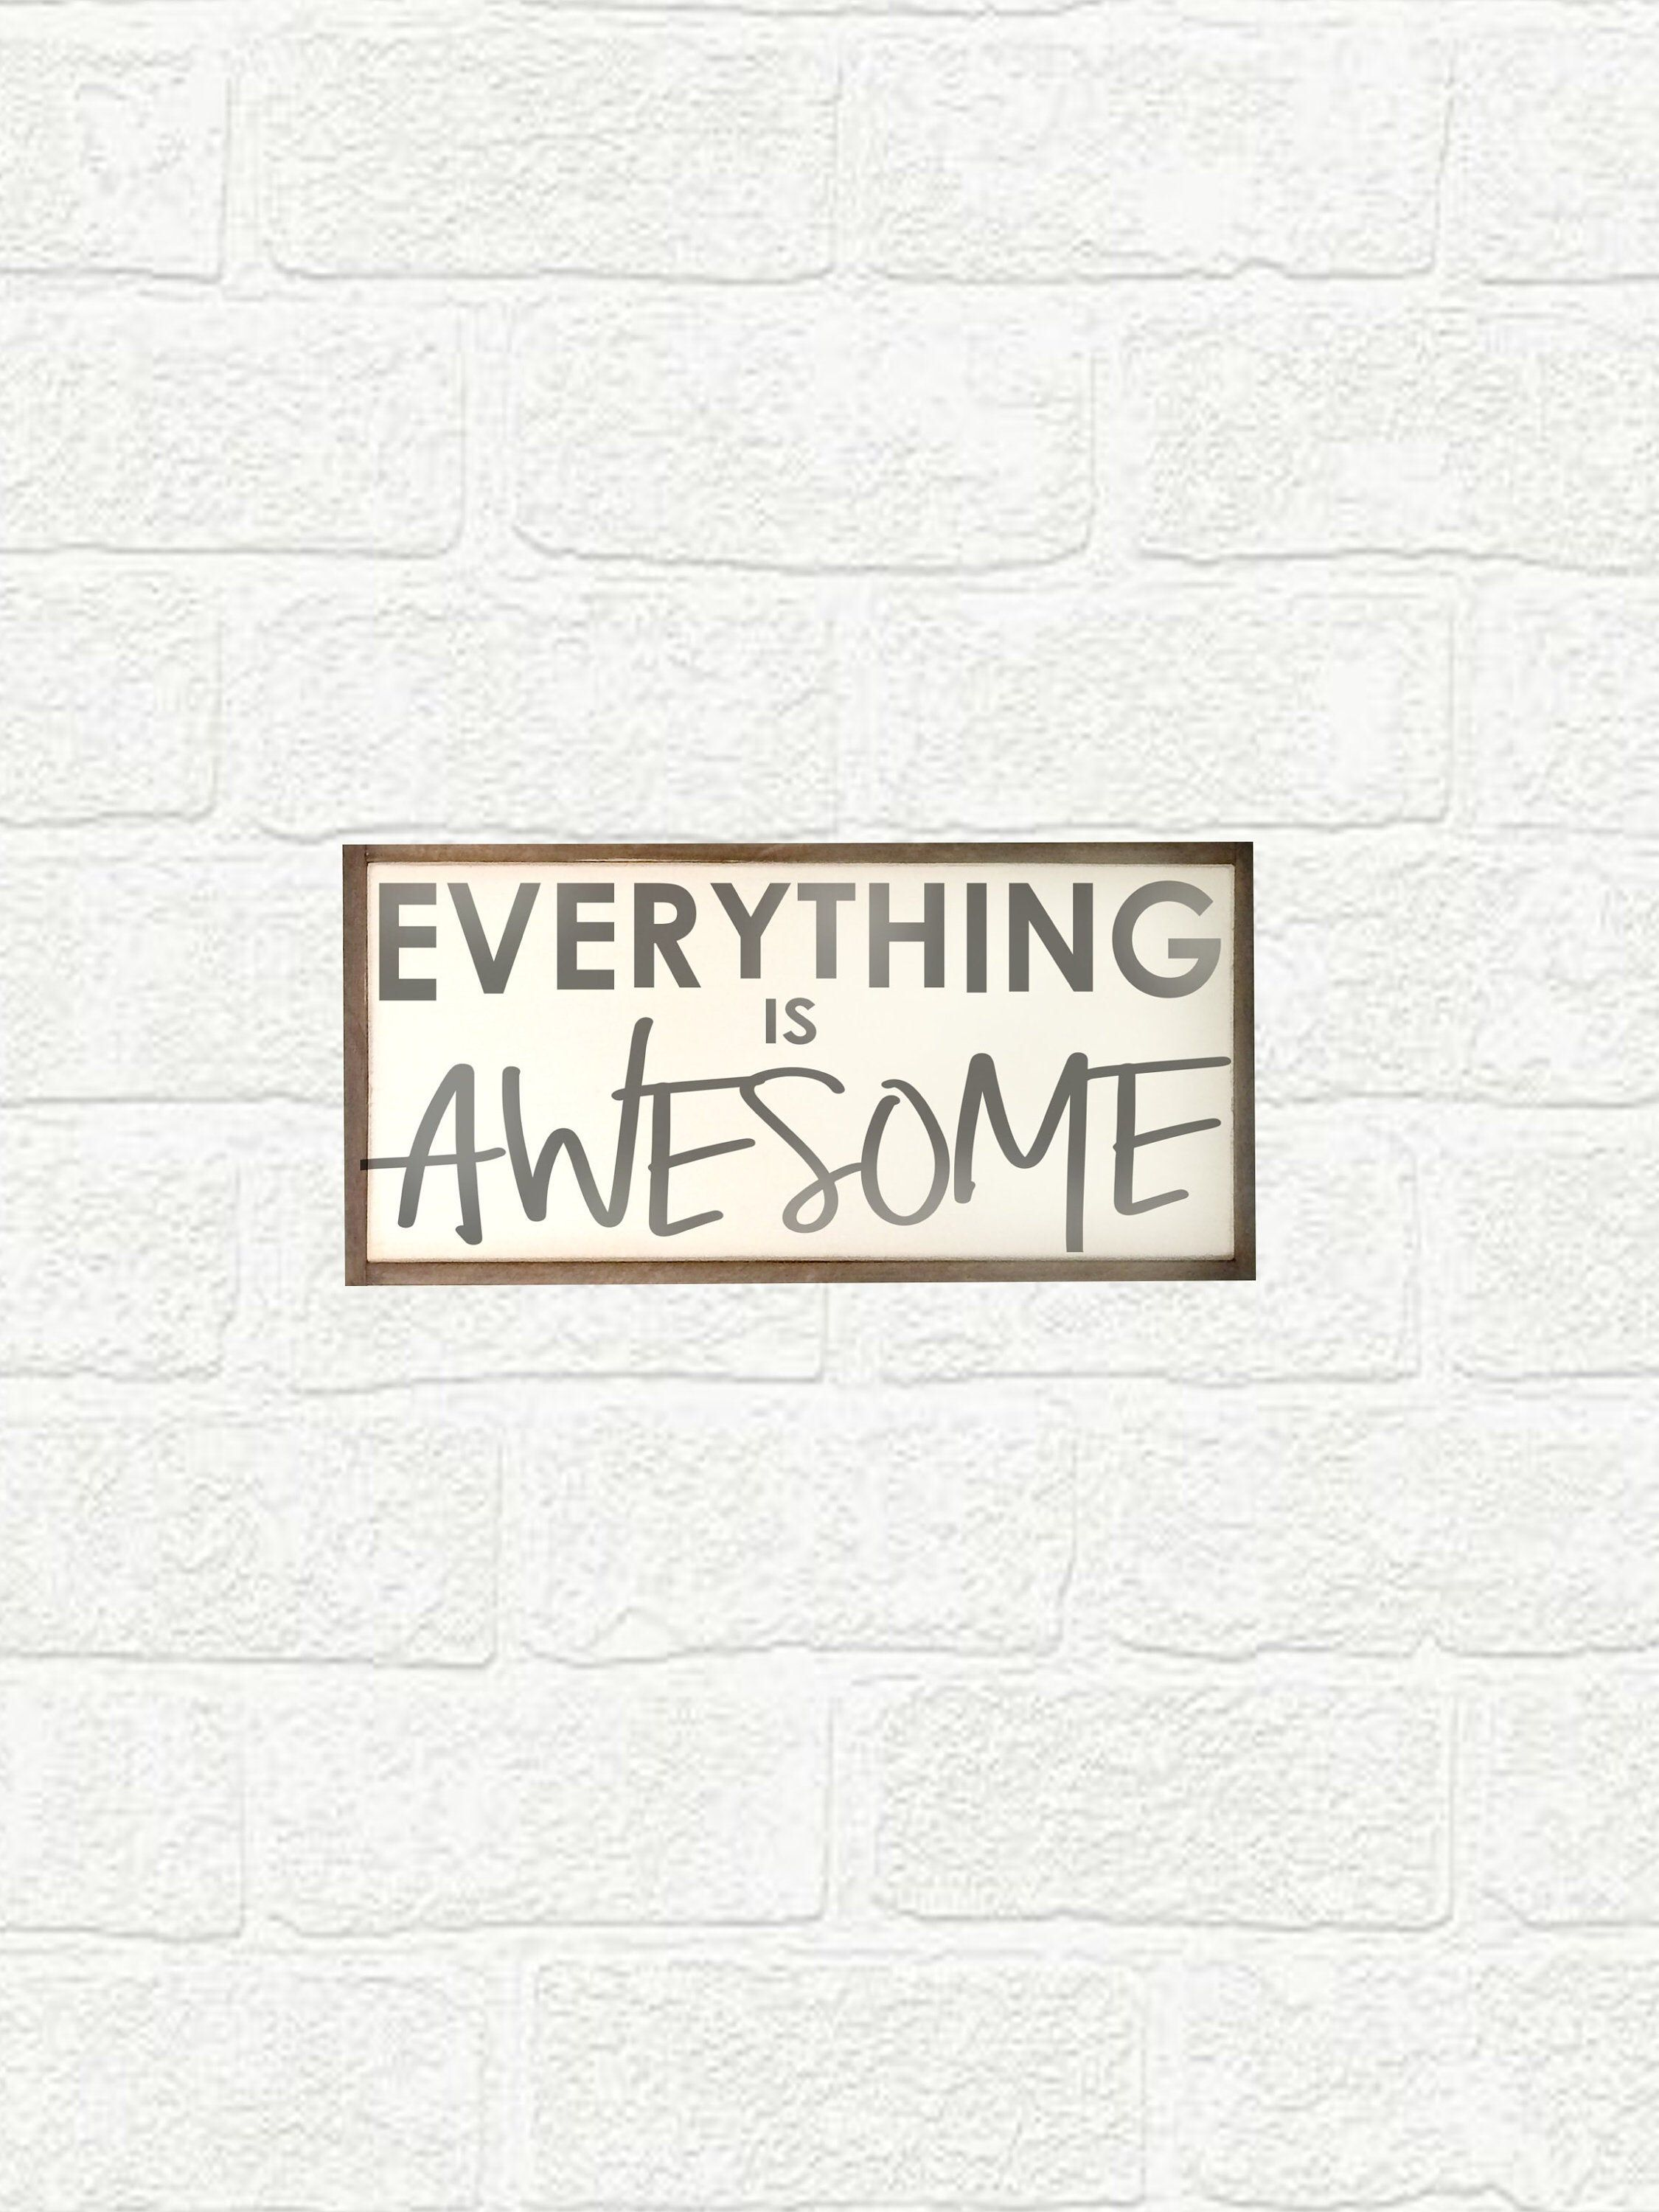 Wall Hanging Cute Quotes Everything Is Awesome Wood Art Nusery Decor Wall Art Decor Wall Art Decor Nusery Decor Art Decor